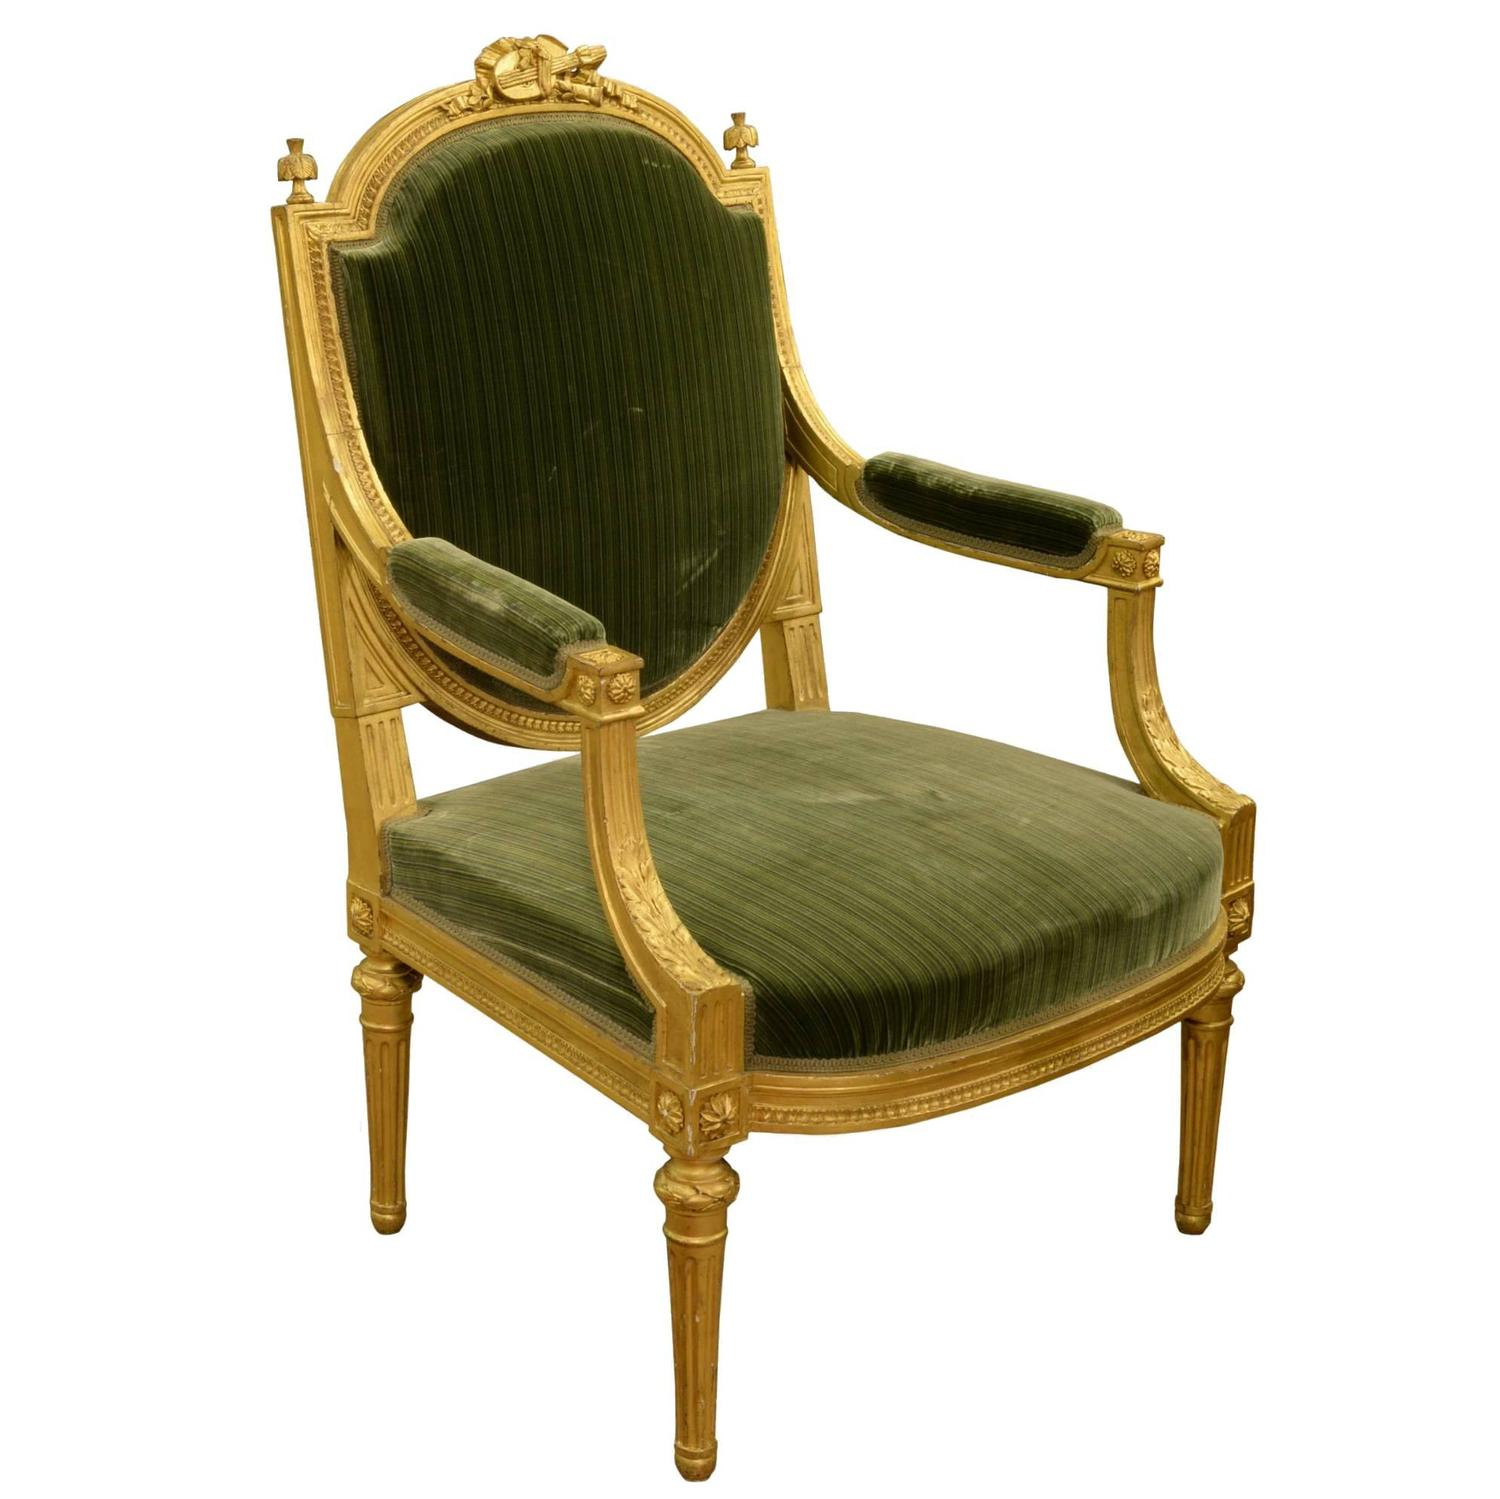 19th century louis xvi style fauteuil at 1stdibs. Black Bedroom Furniture Sets. Home Design Ideas